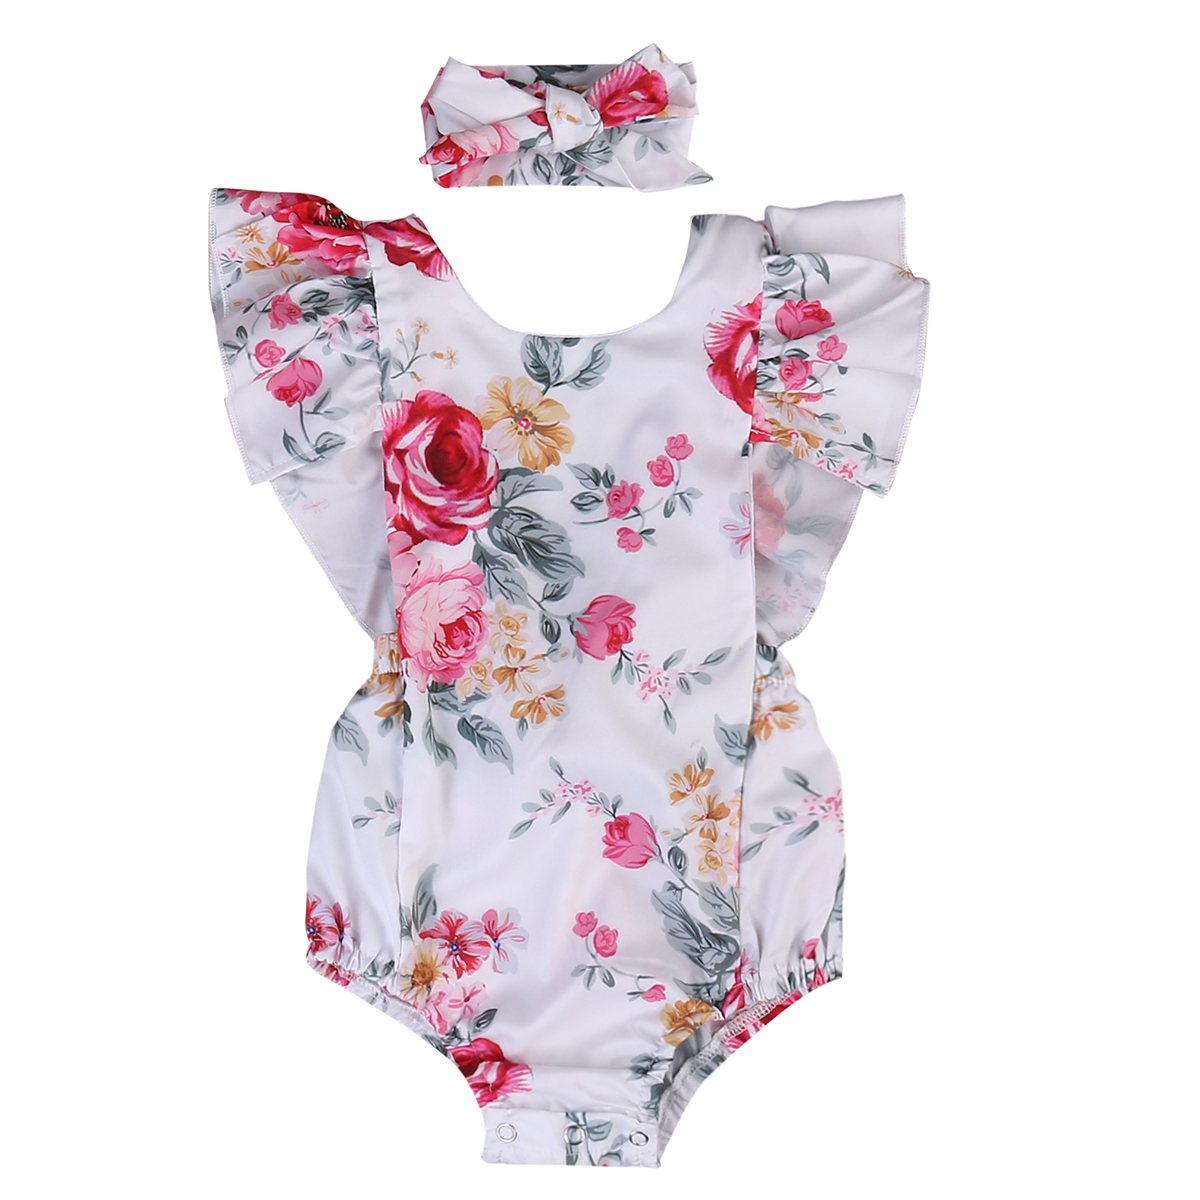 Summer Newborn Infant Baby Girls Sleeveless Ruffled Flora Bodysuits Jumpsuit Cotton 2pcs Clothes Sunsuit Baby Girls Bodysuits